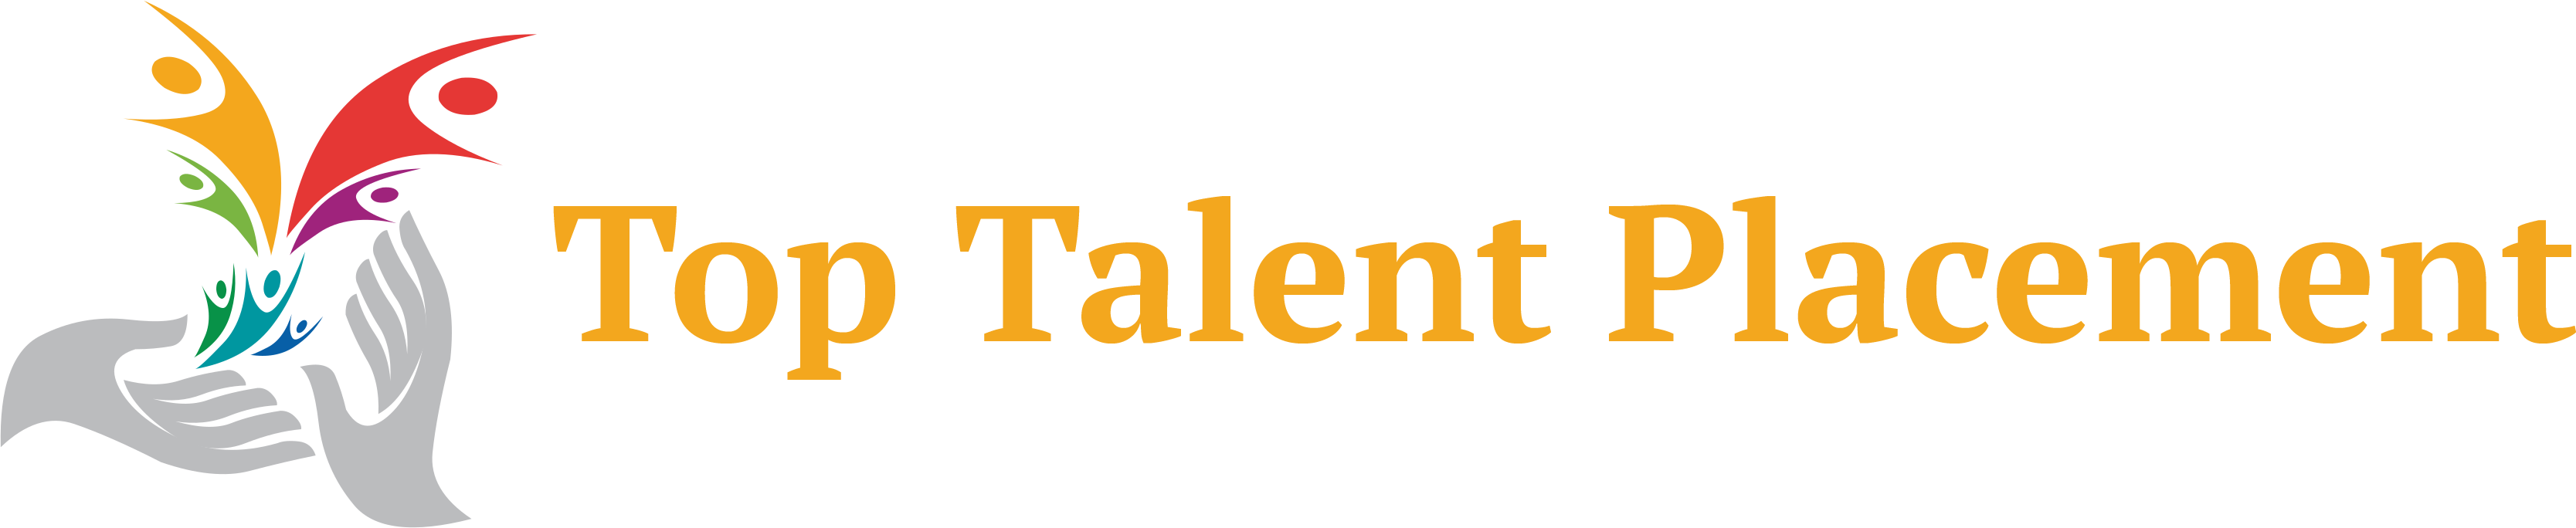 Top Talent Placement